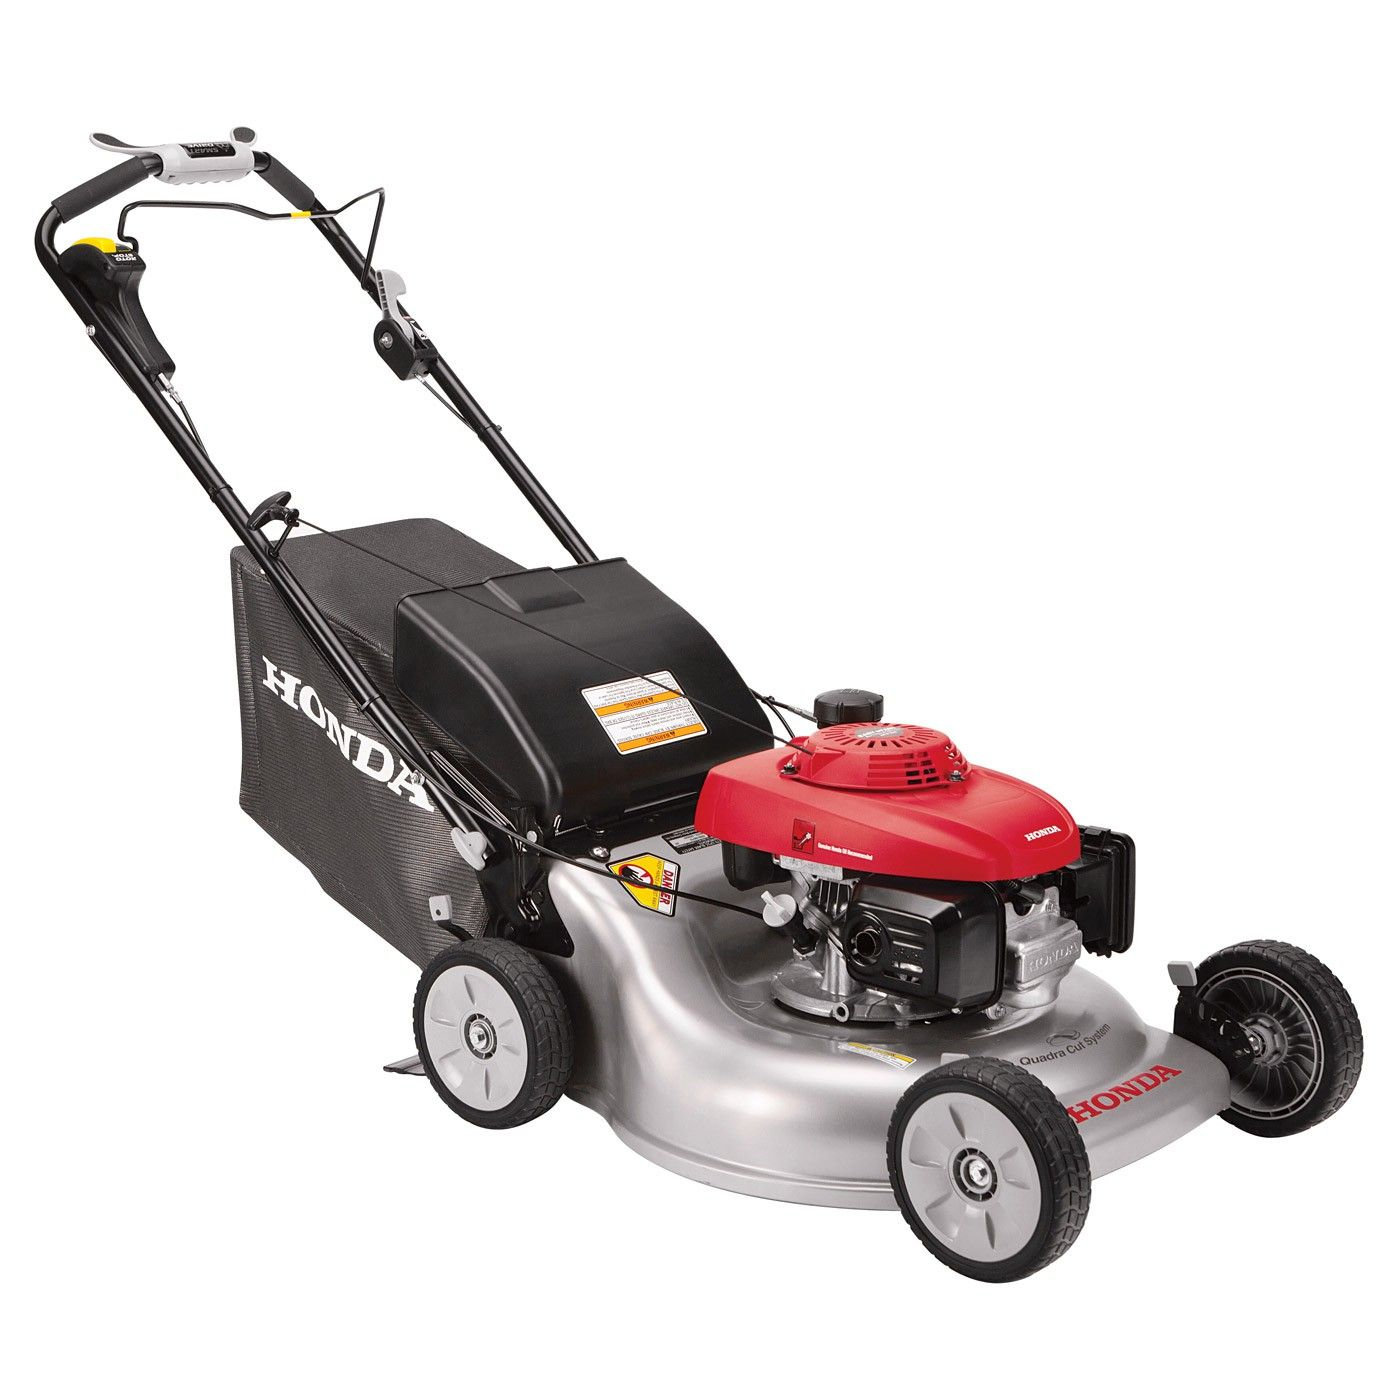 Already known for their durability and reliability Honda lawnmowers